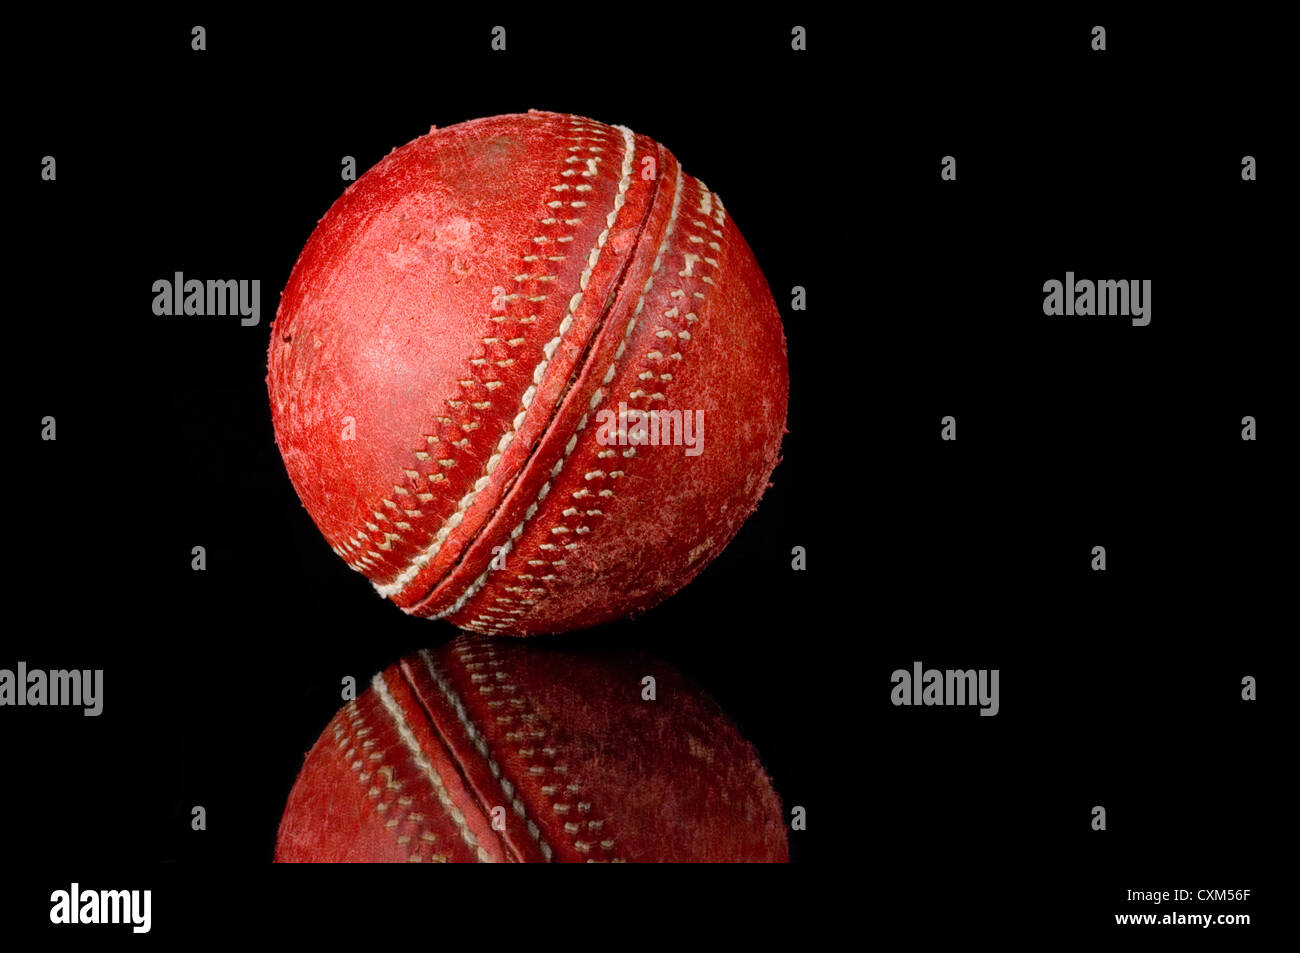 Red, scuffed Cricket ball on black background with reflection - Stock Image